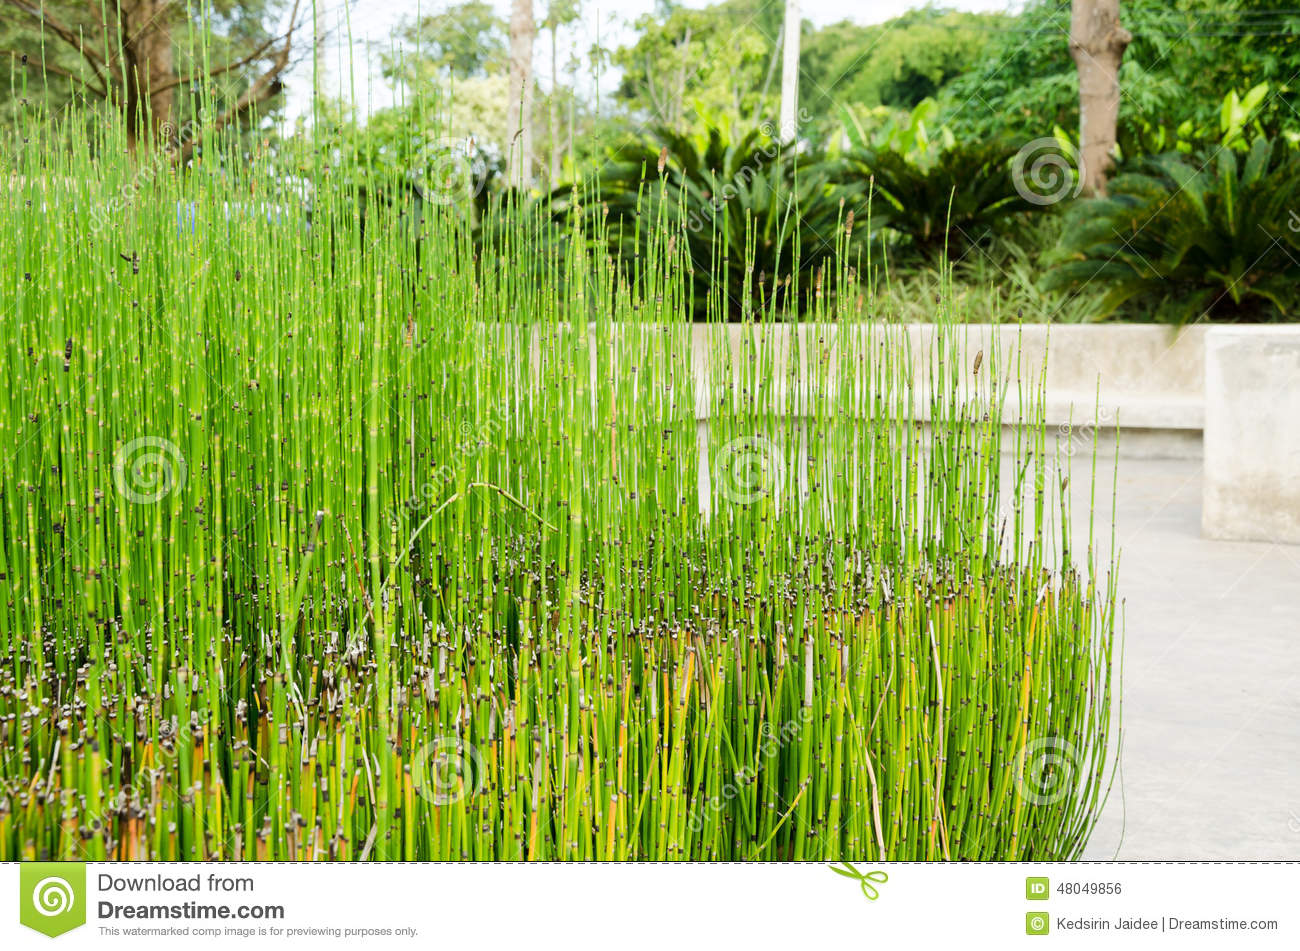 Plante ornementale dans le jardin ext rieur photo stock for Plante ornementale des jardins